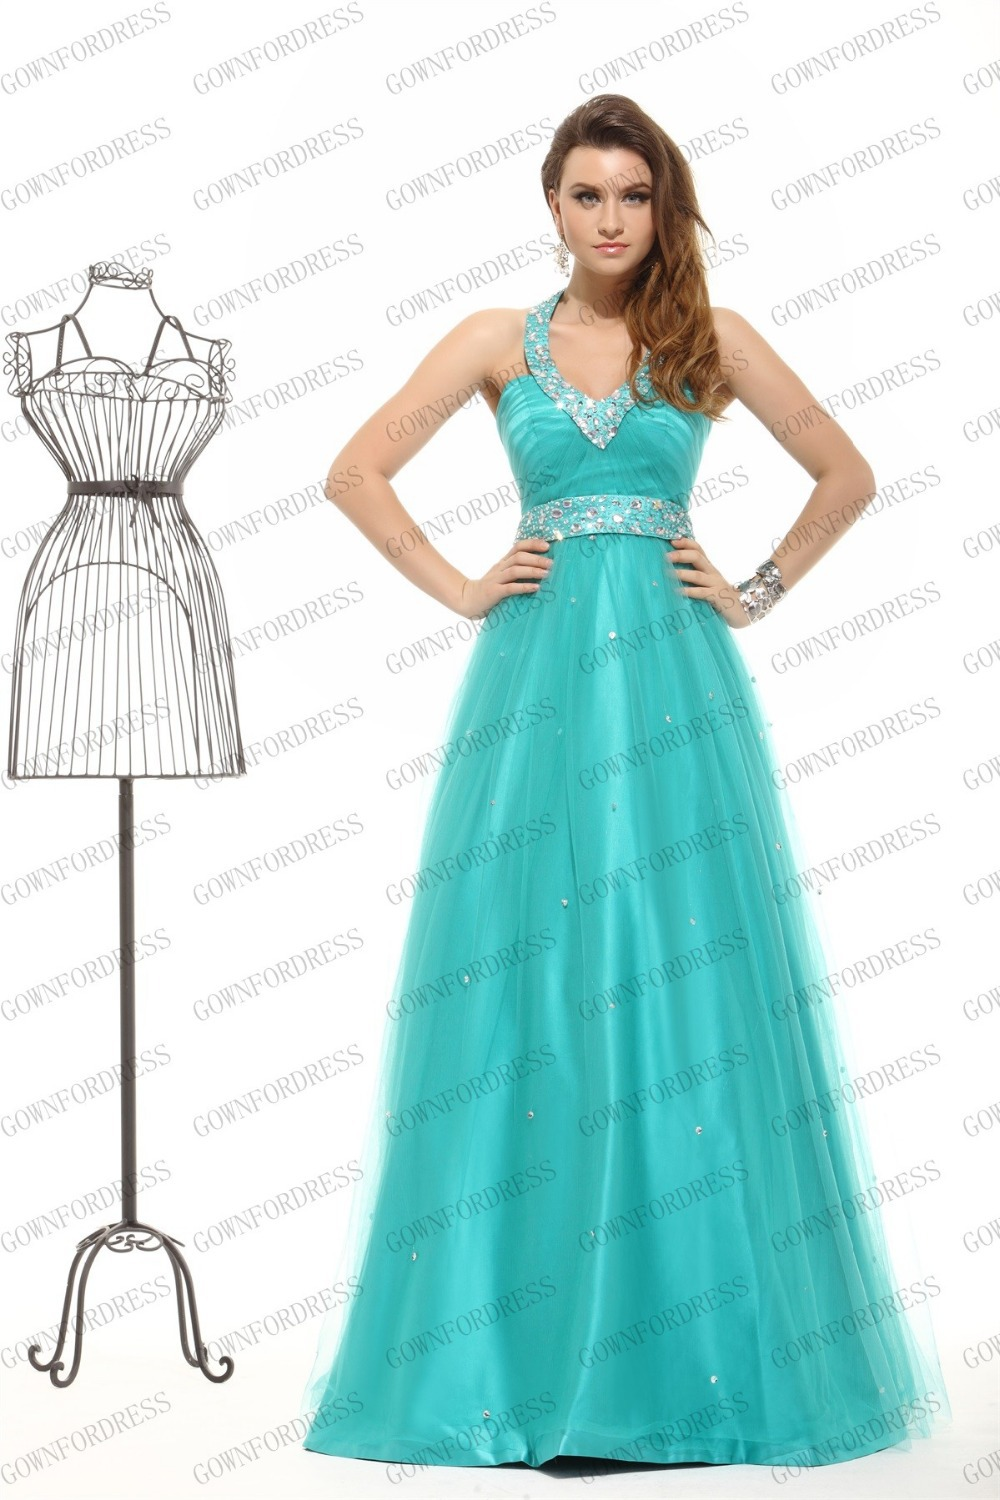 Luxury Prom Dress Websites In Usa Adornment - All Wedding Dresses ...